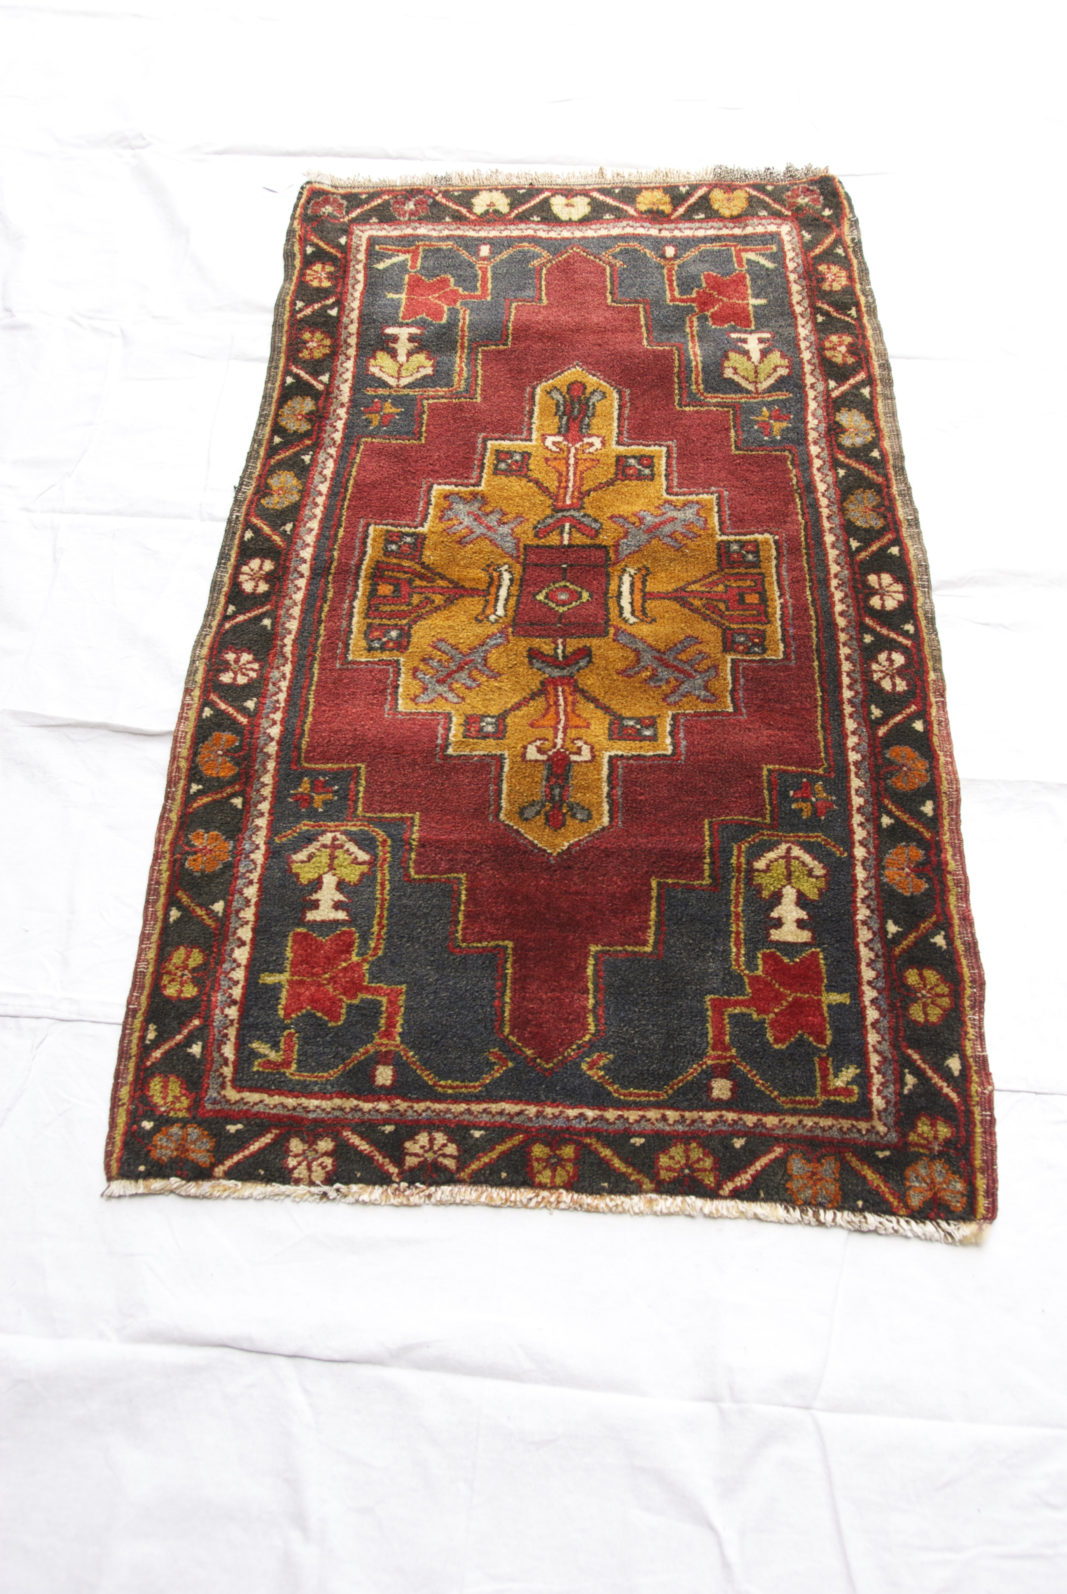 Turkish Tashpinar carpet hand woven and knotted wool on wool carpet 40-50 years old 1.28 x 0.70 $395